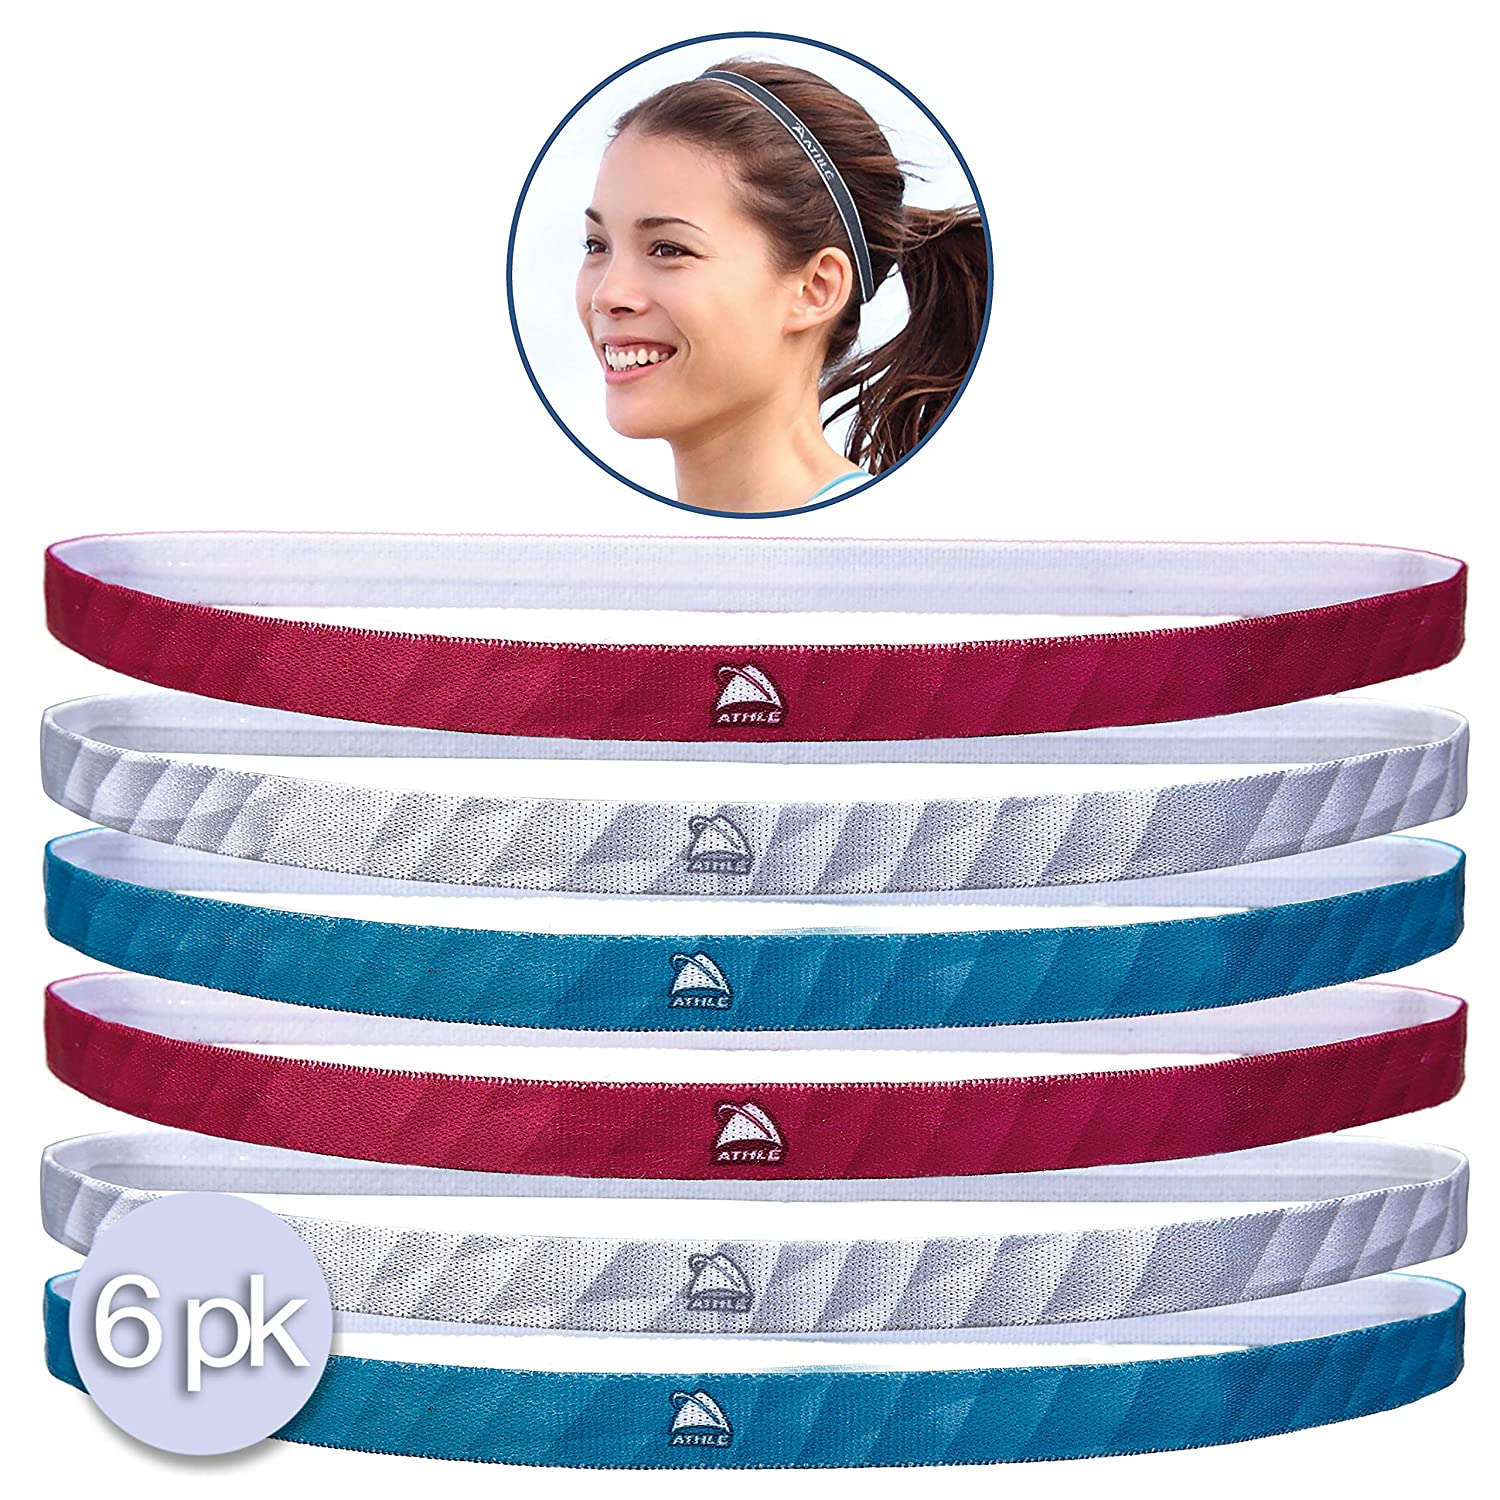 Athle` Non Slip Skinny Sport Headbands With Silicon Grip - 6pk Athle`Sport Inc.